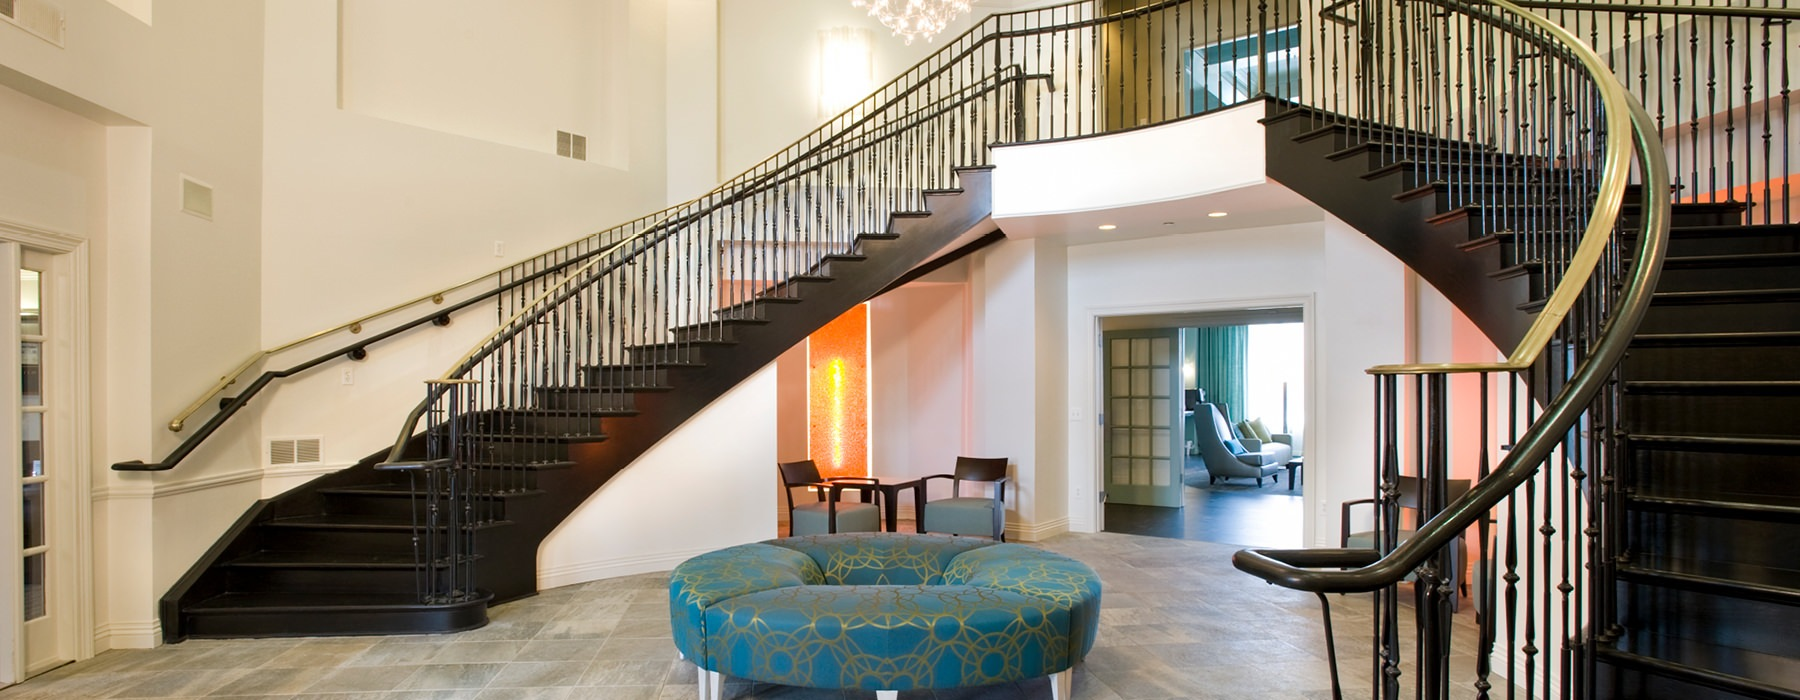 Large lobby with dual curving staircase and circular couch seating.